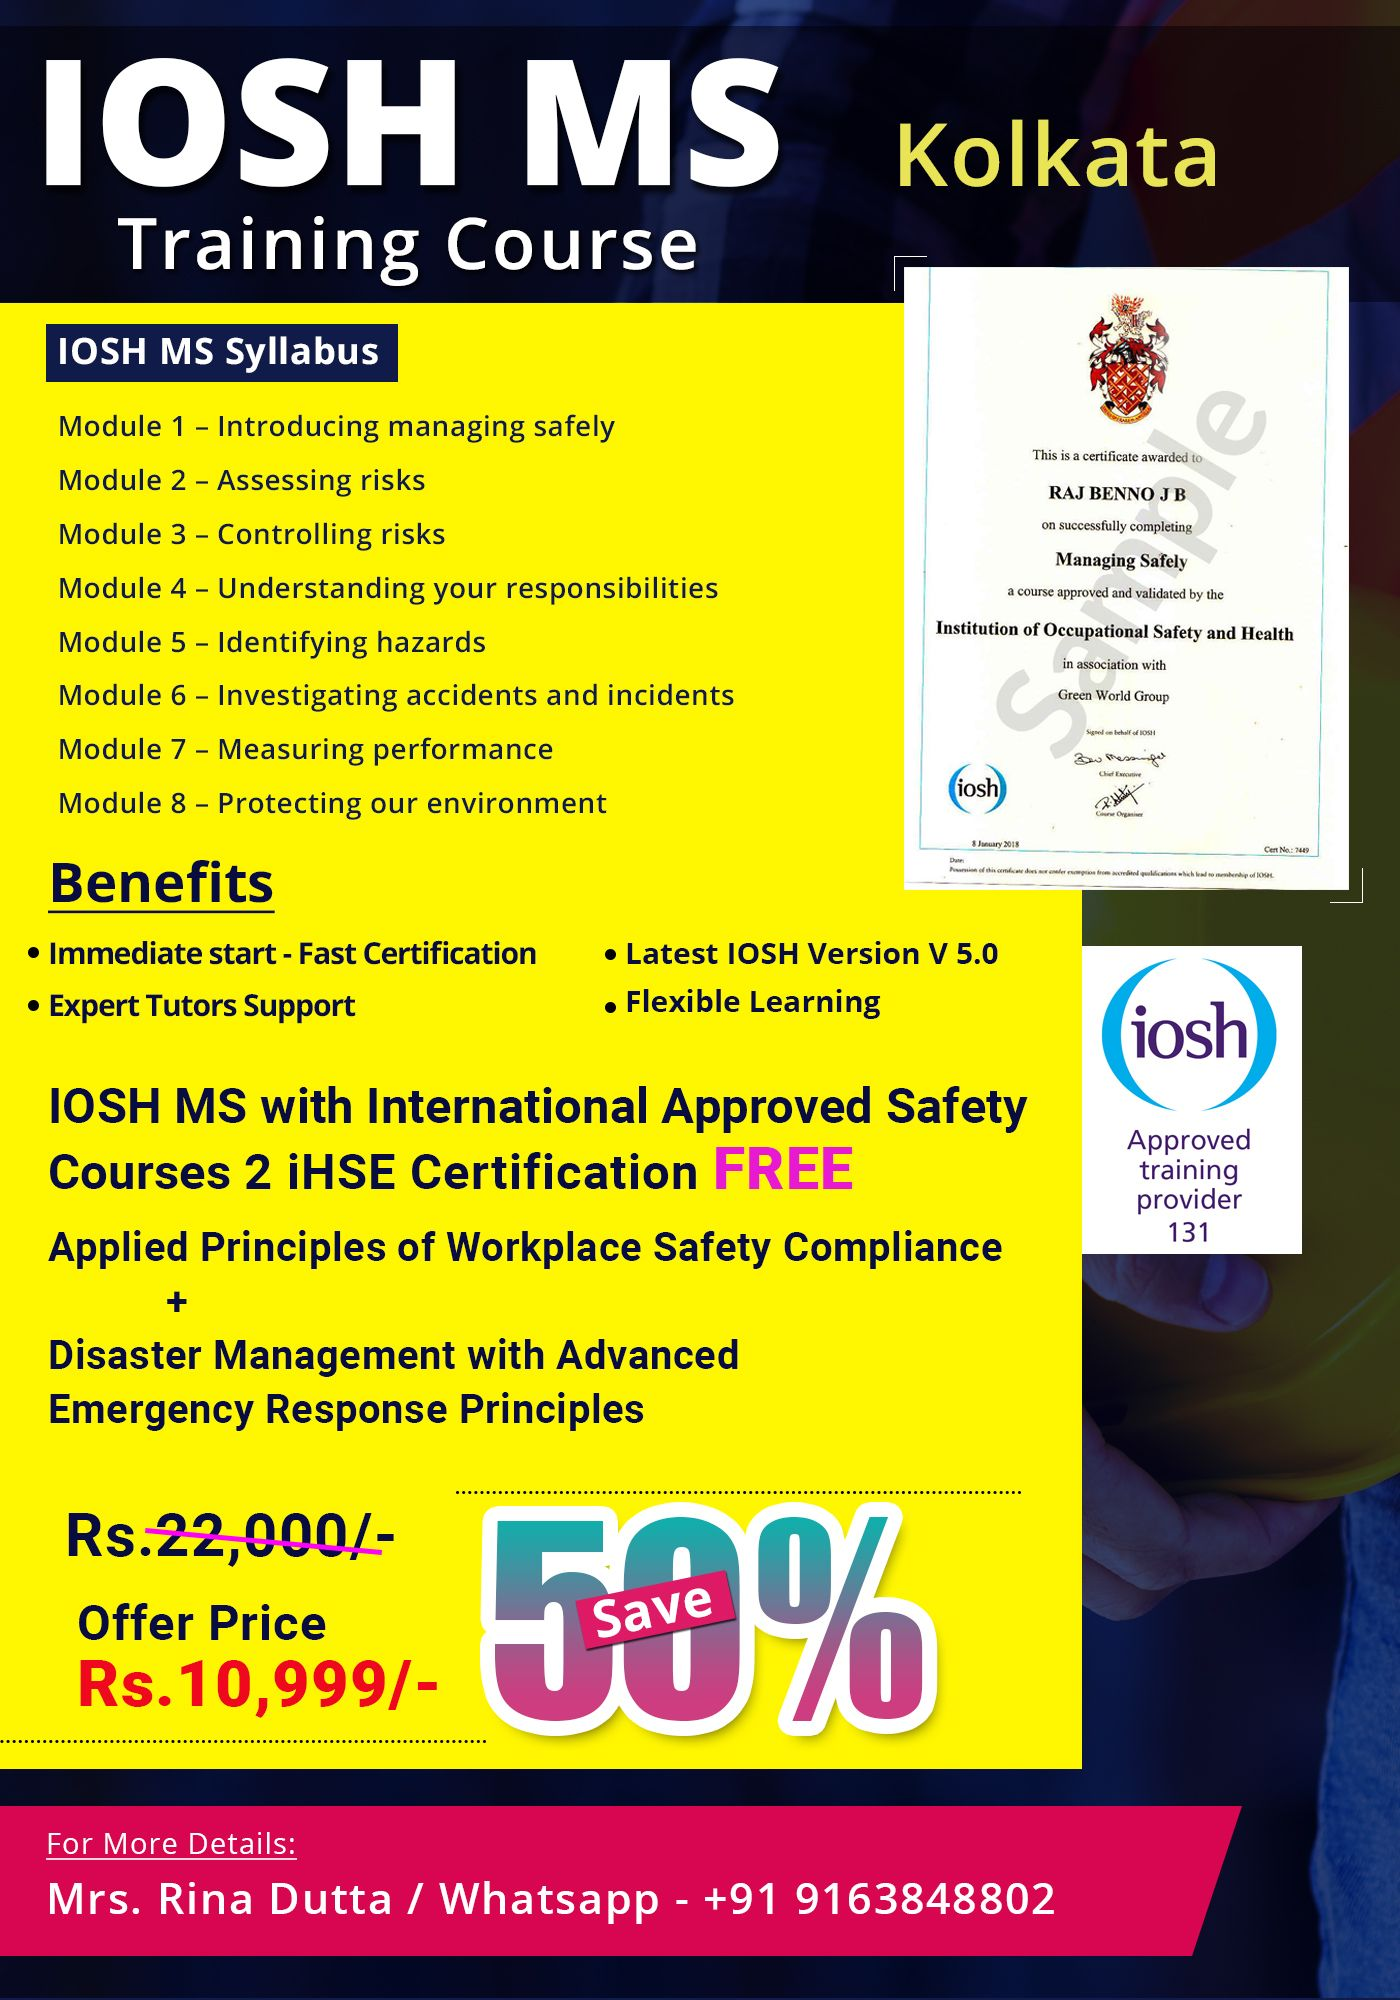 IOSH Course in Kolkata is the most famous qualification in